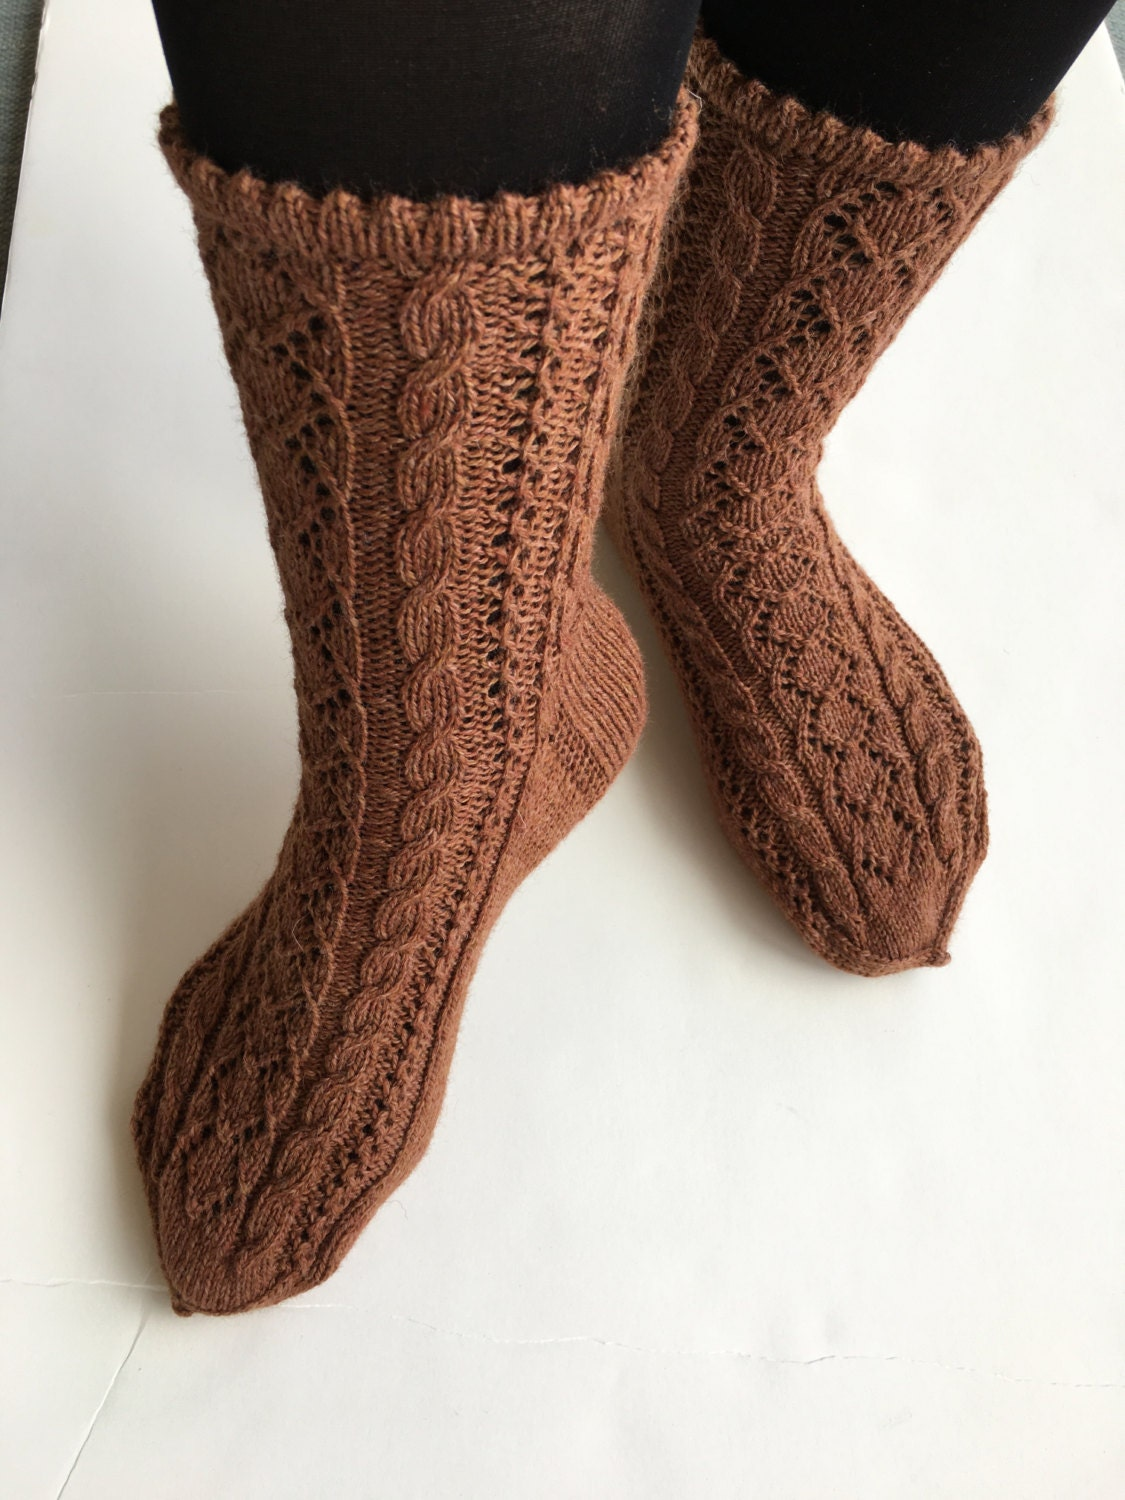 Hand knitted lace pattern socks women size 8-9 color brown.